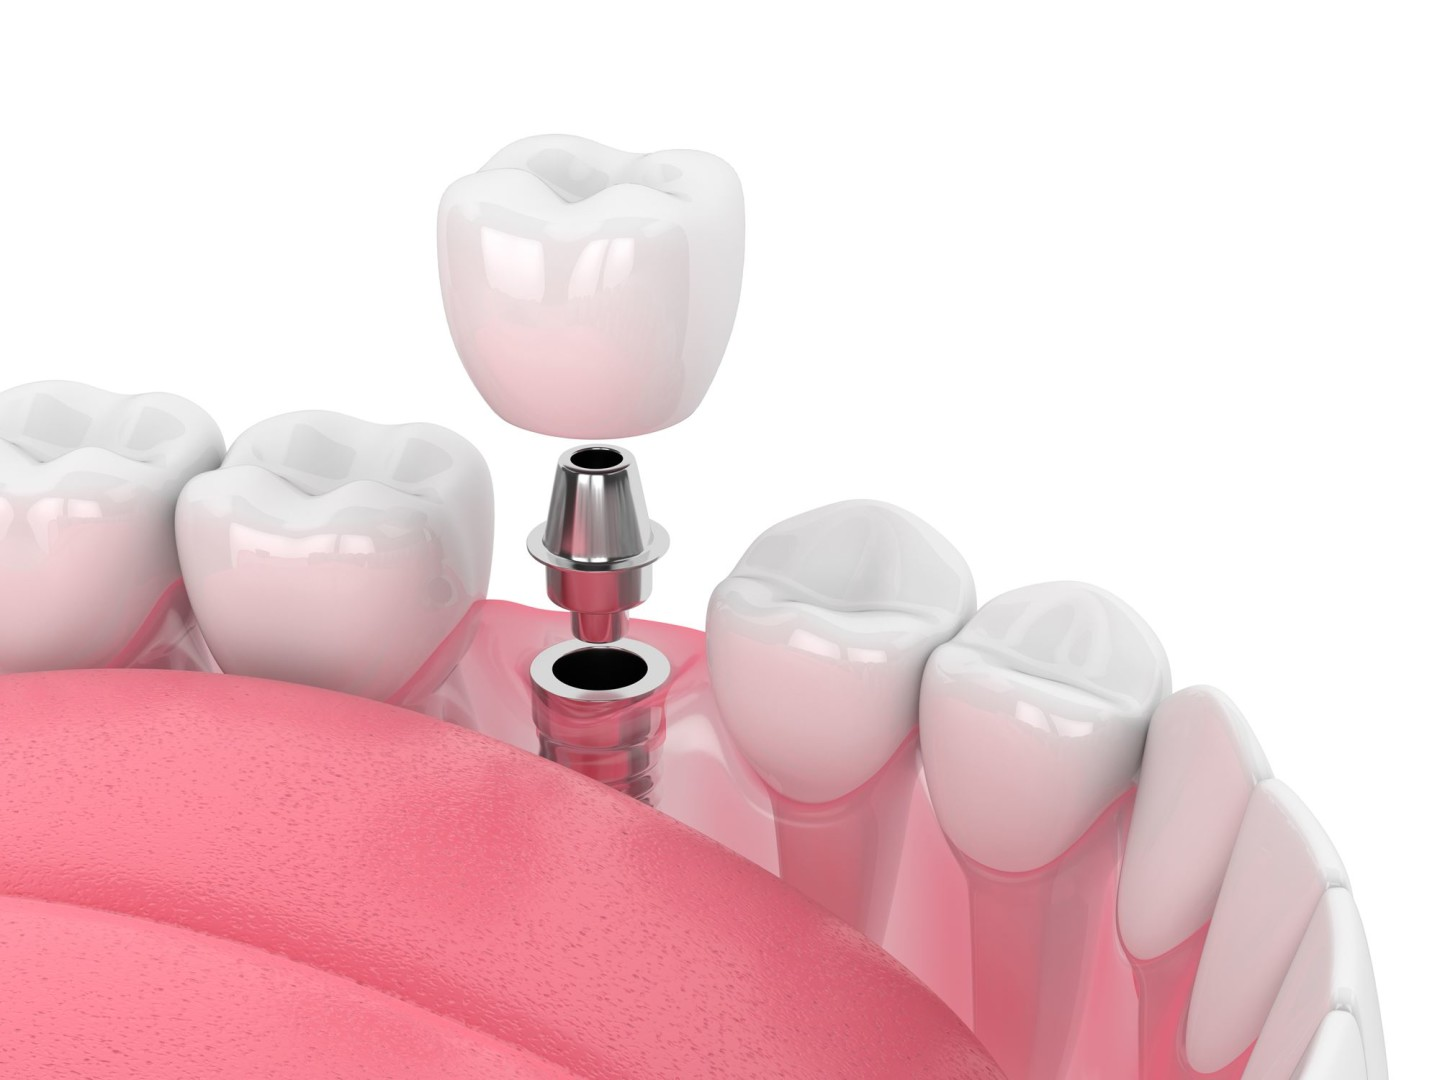 implant dentaire 3D